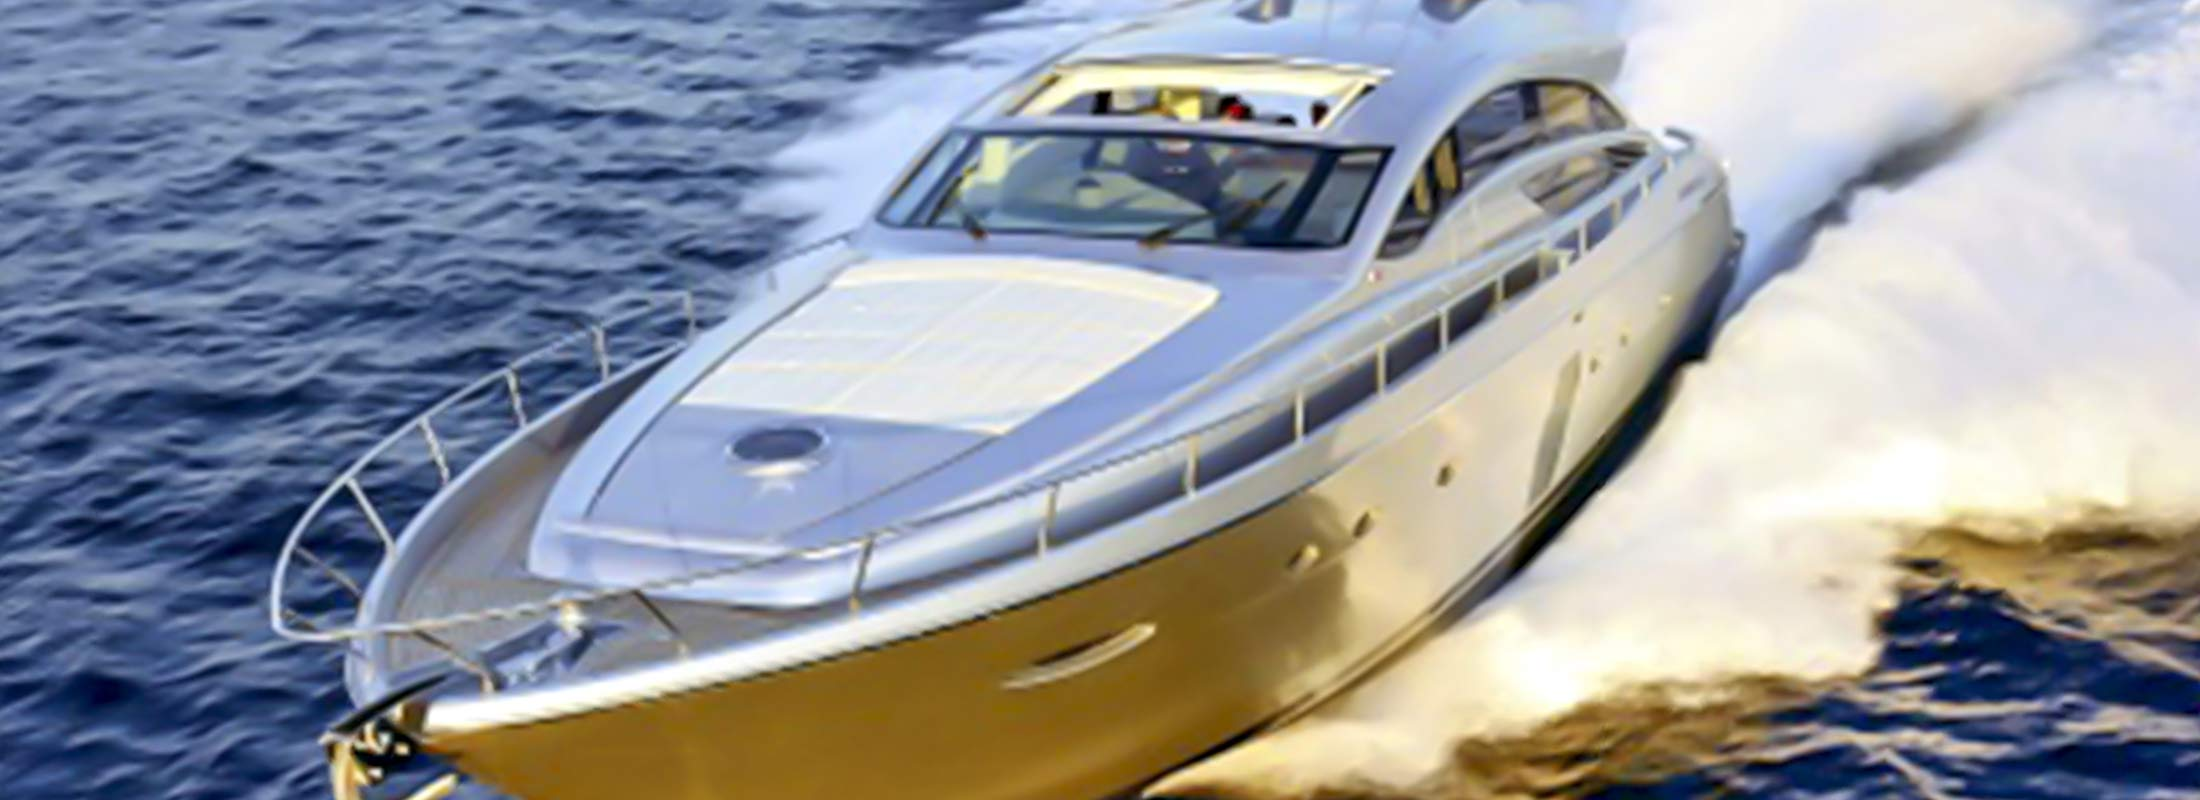 Angels Demons Motor Yacht for Charter Mediterranean slider 2